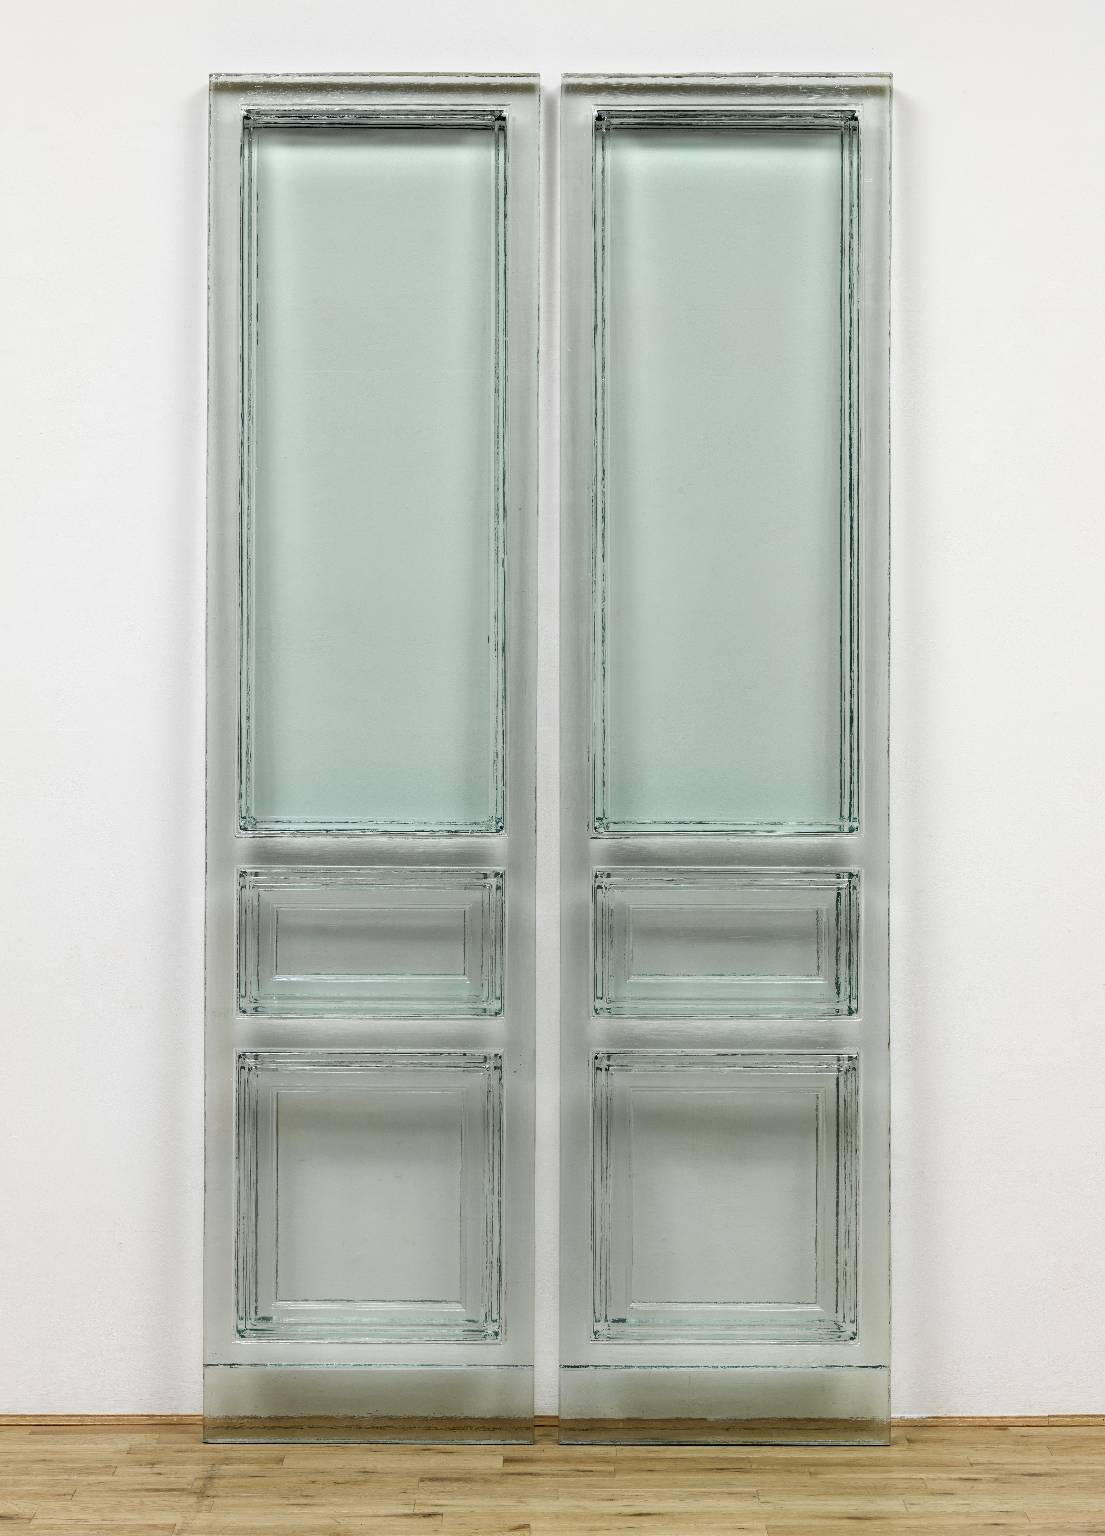 © Rachel Whiteread. Courtesy Galleria Lorcan O'Neill.